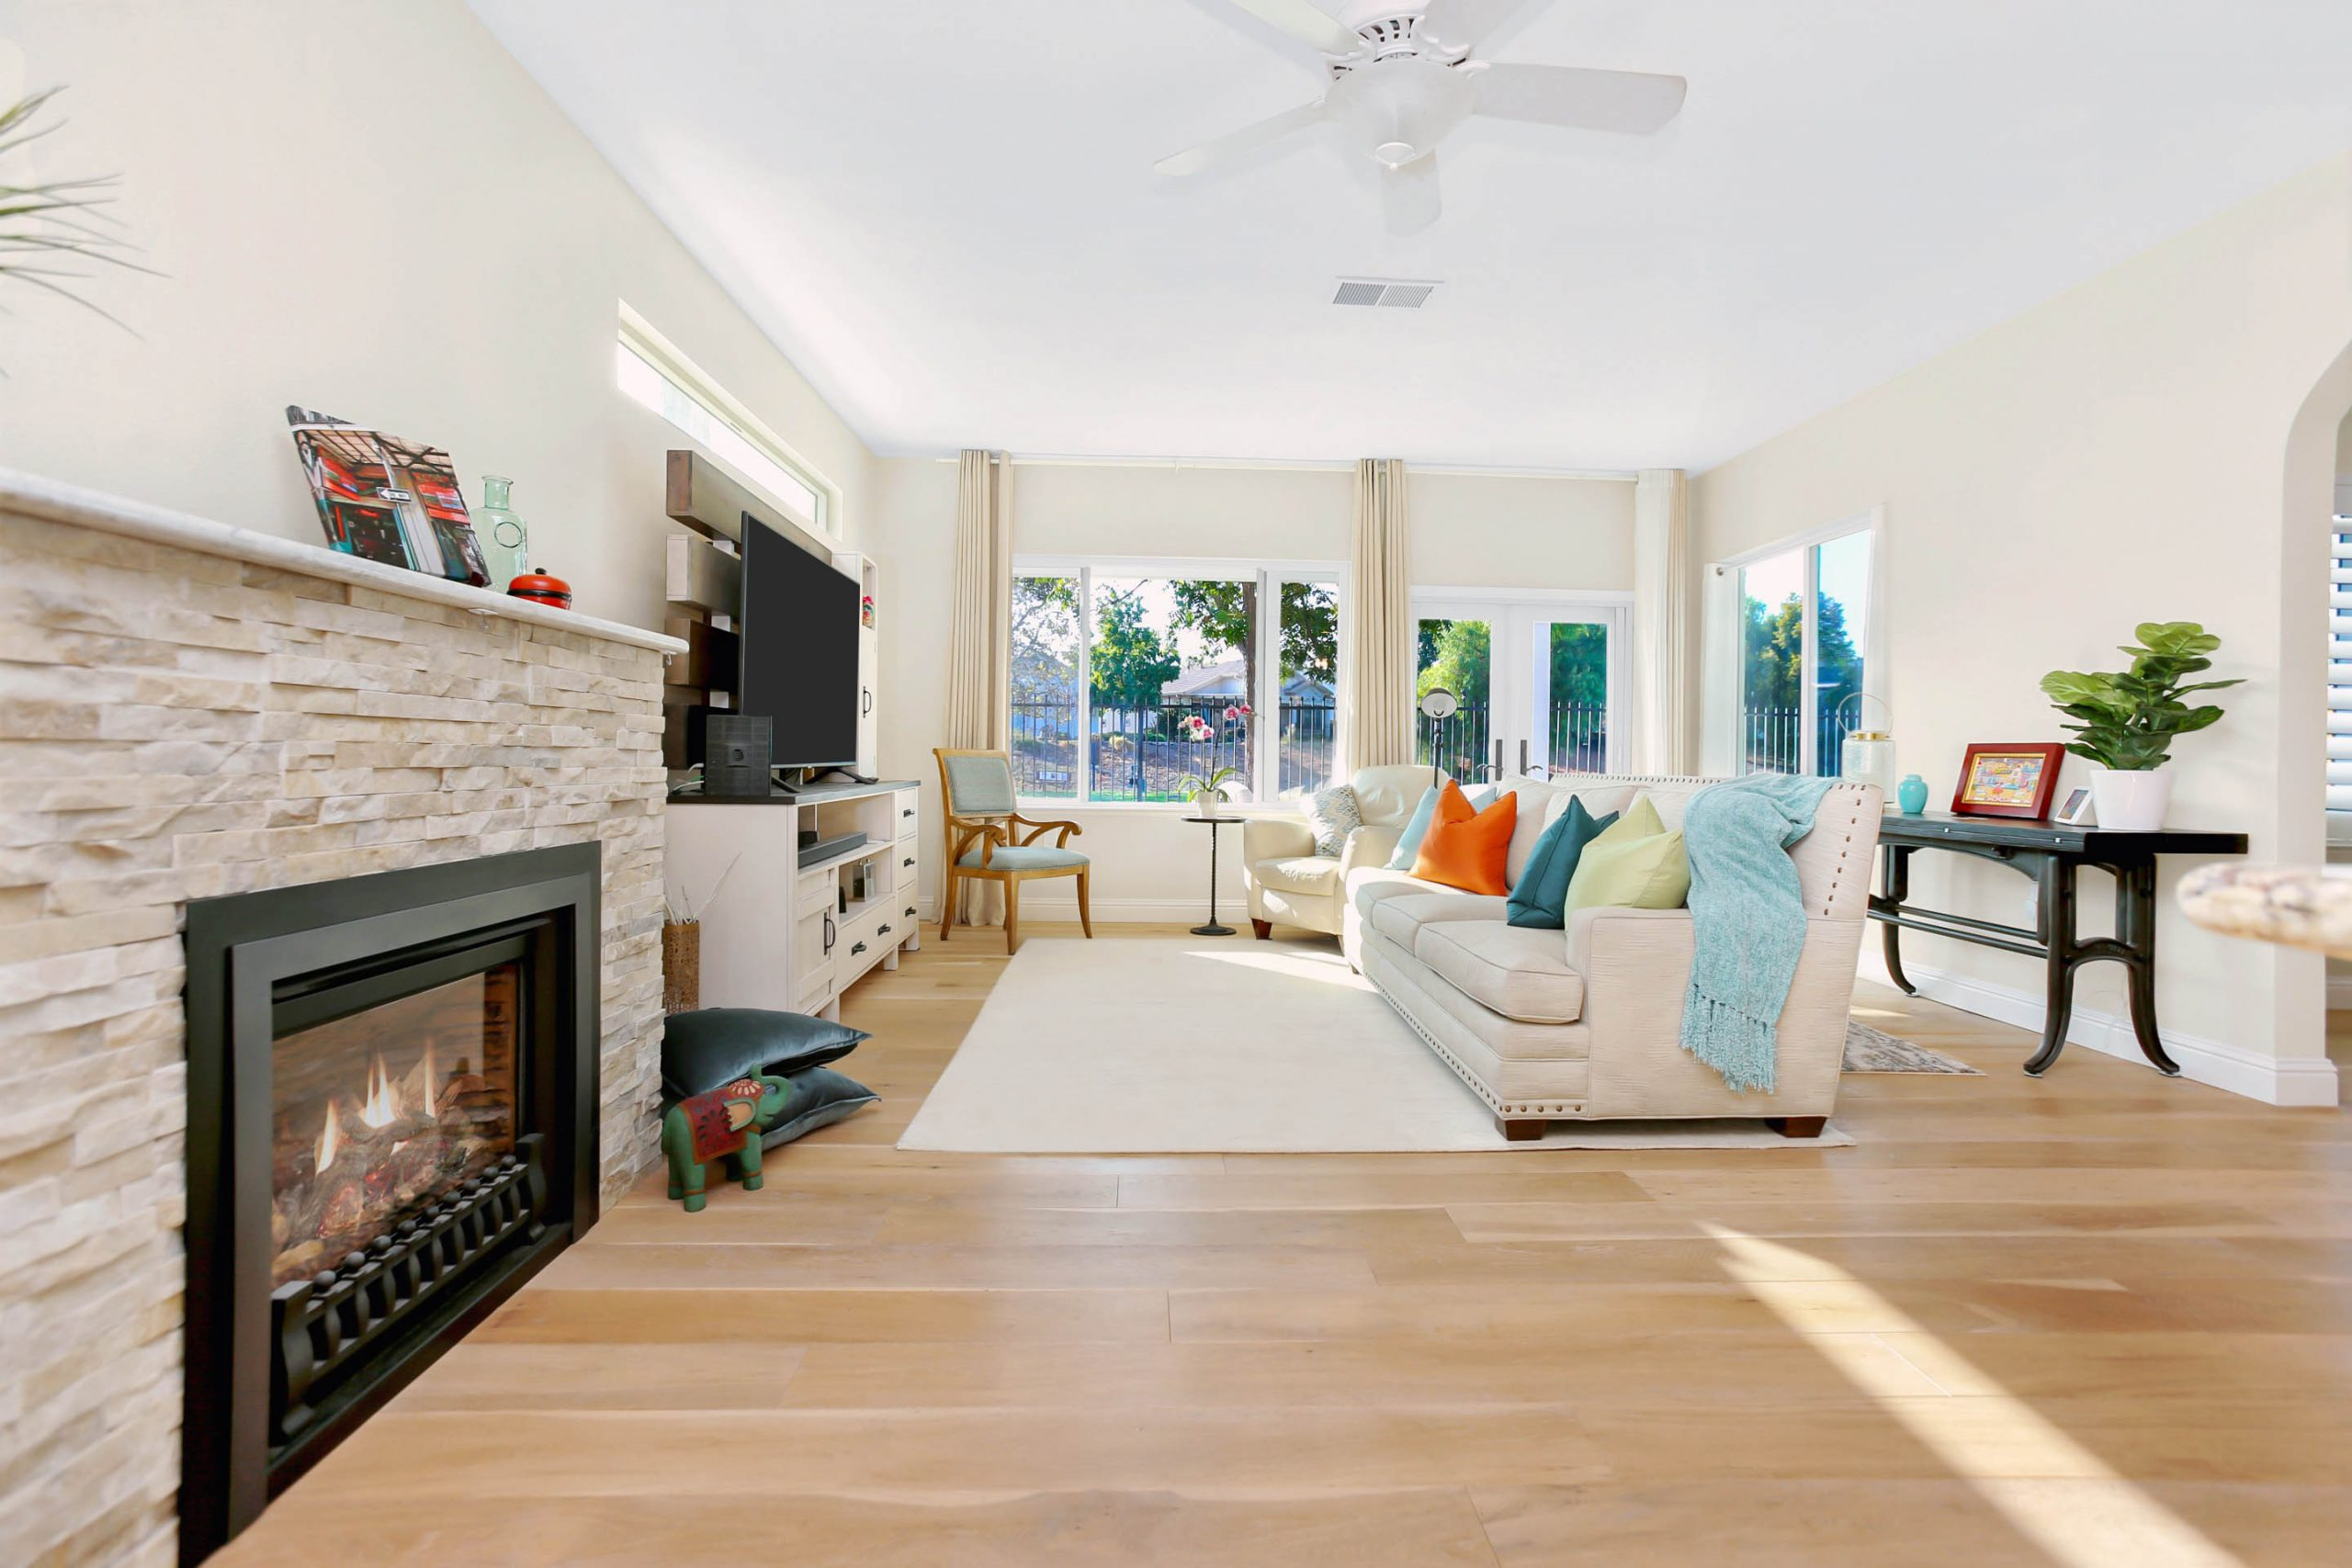 These homeowners are as snug as a couple of bugs in a rug with their newly expanded family room.